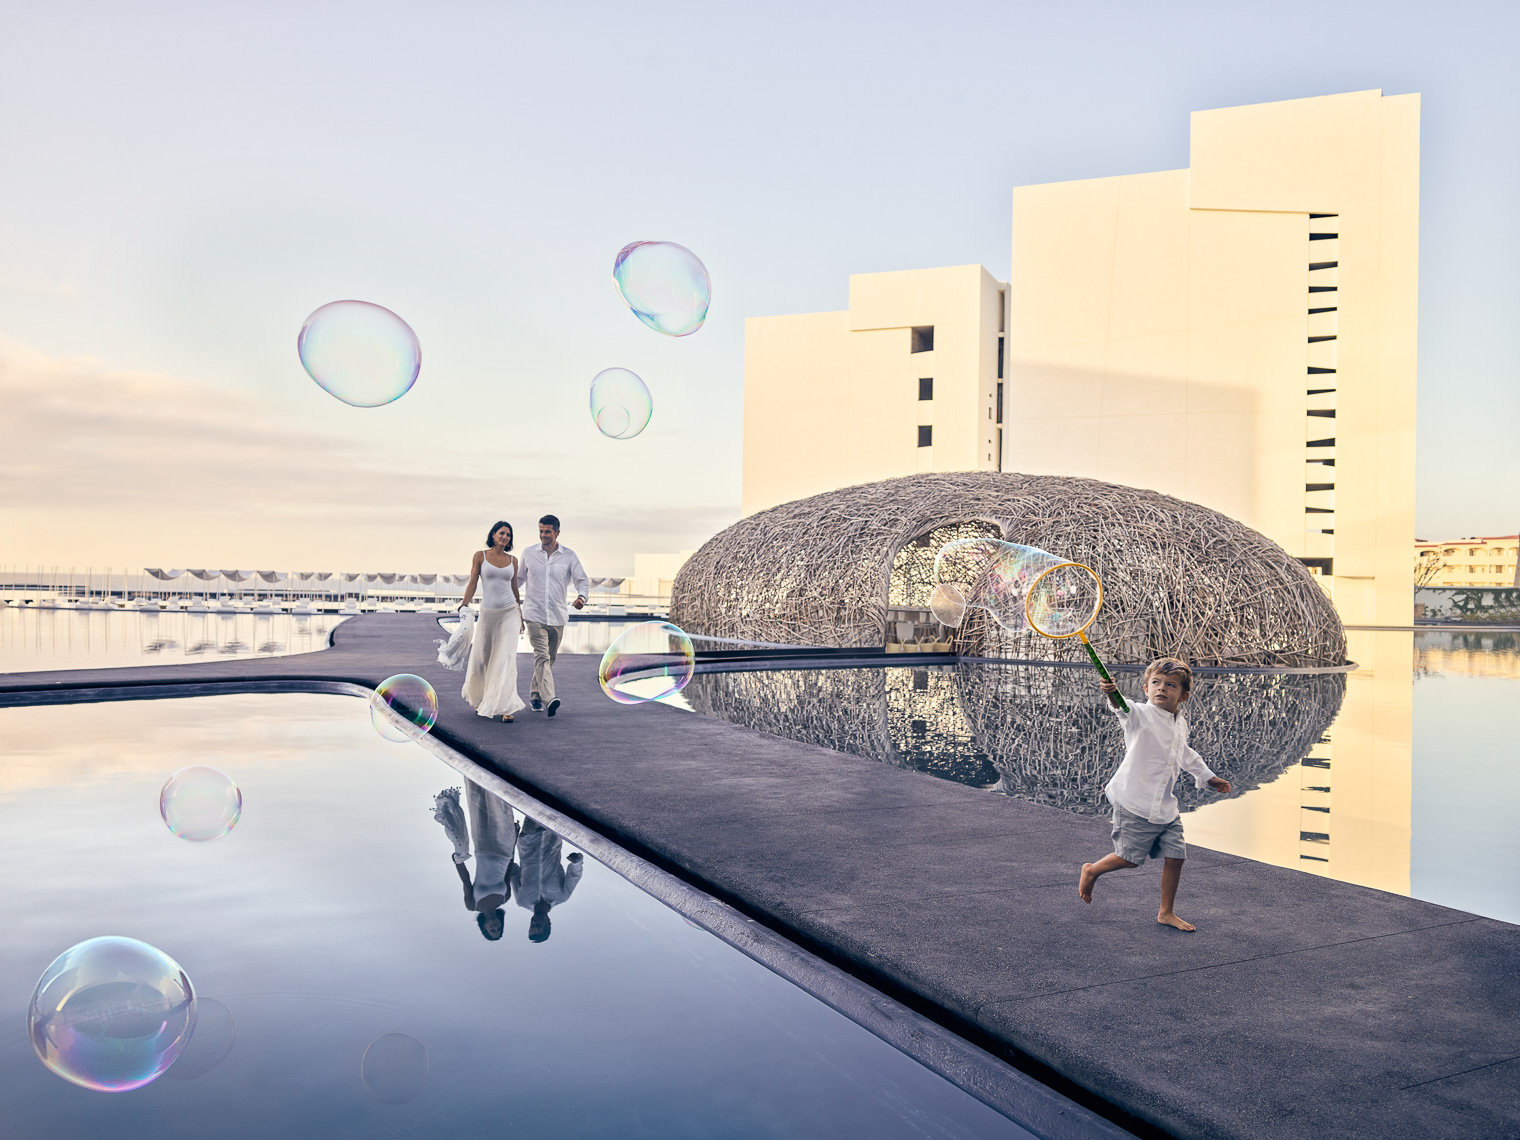 Kevin Steele - a boy runs with bubbles at a unique luxury hotel